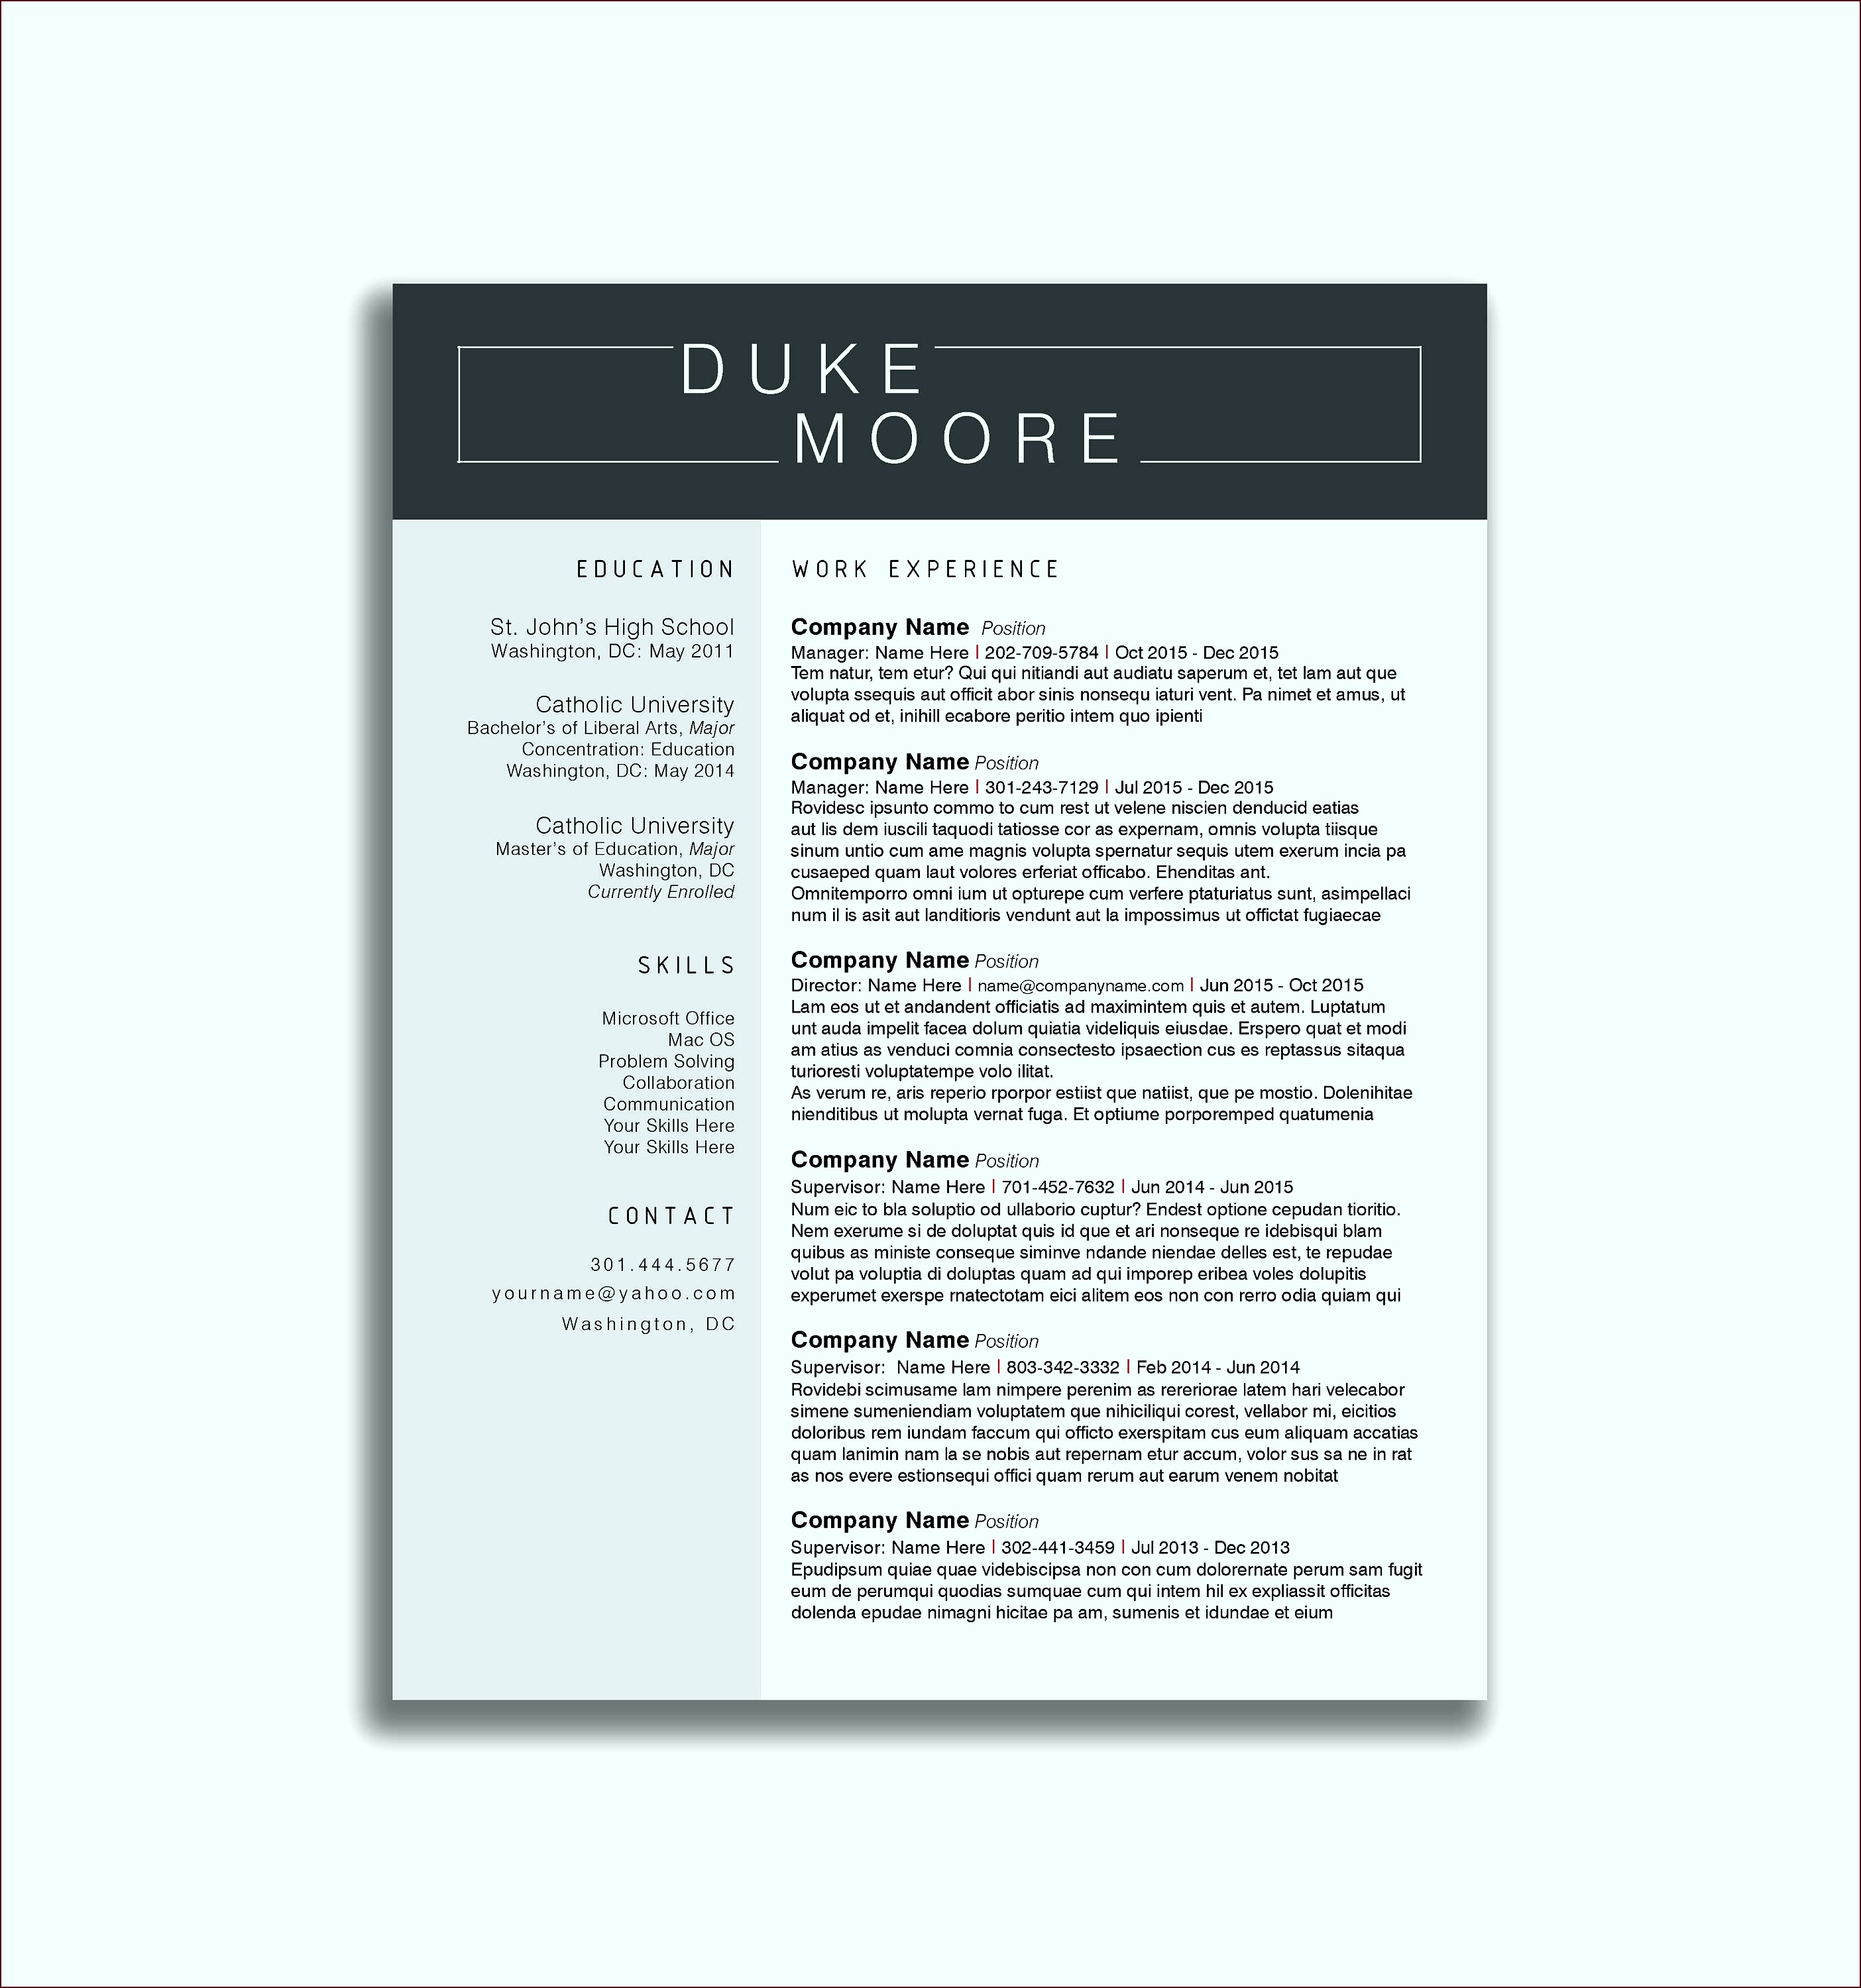 Resume Writing Examples Beautiful Resume Cover Letter Template Docx Best Creative Resume Template iwtti